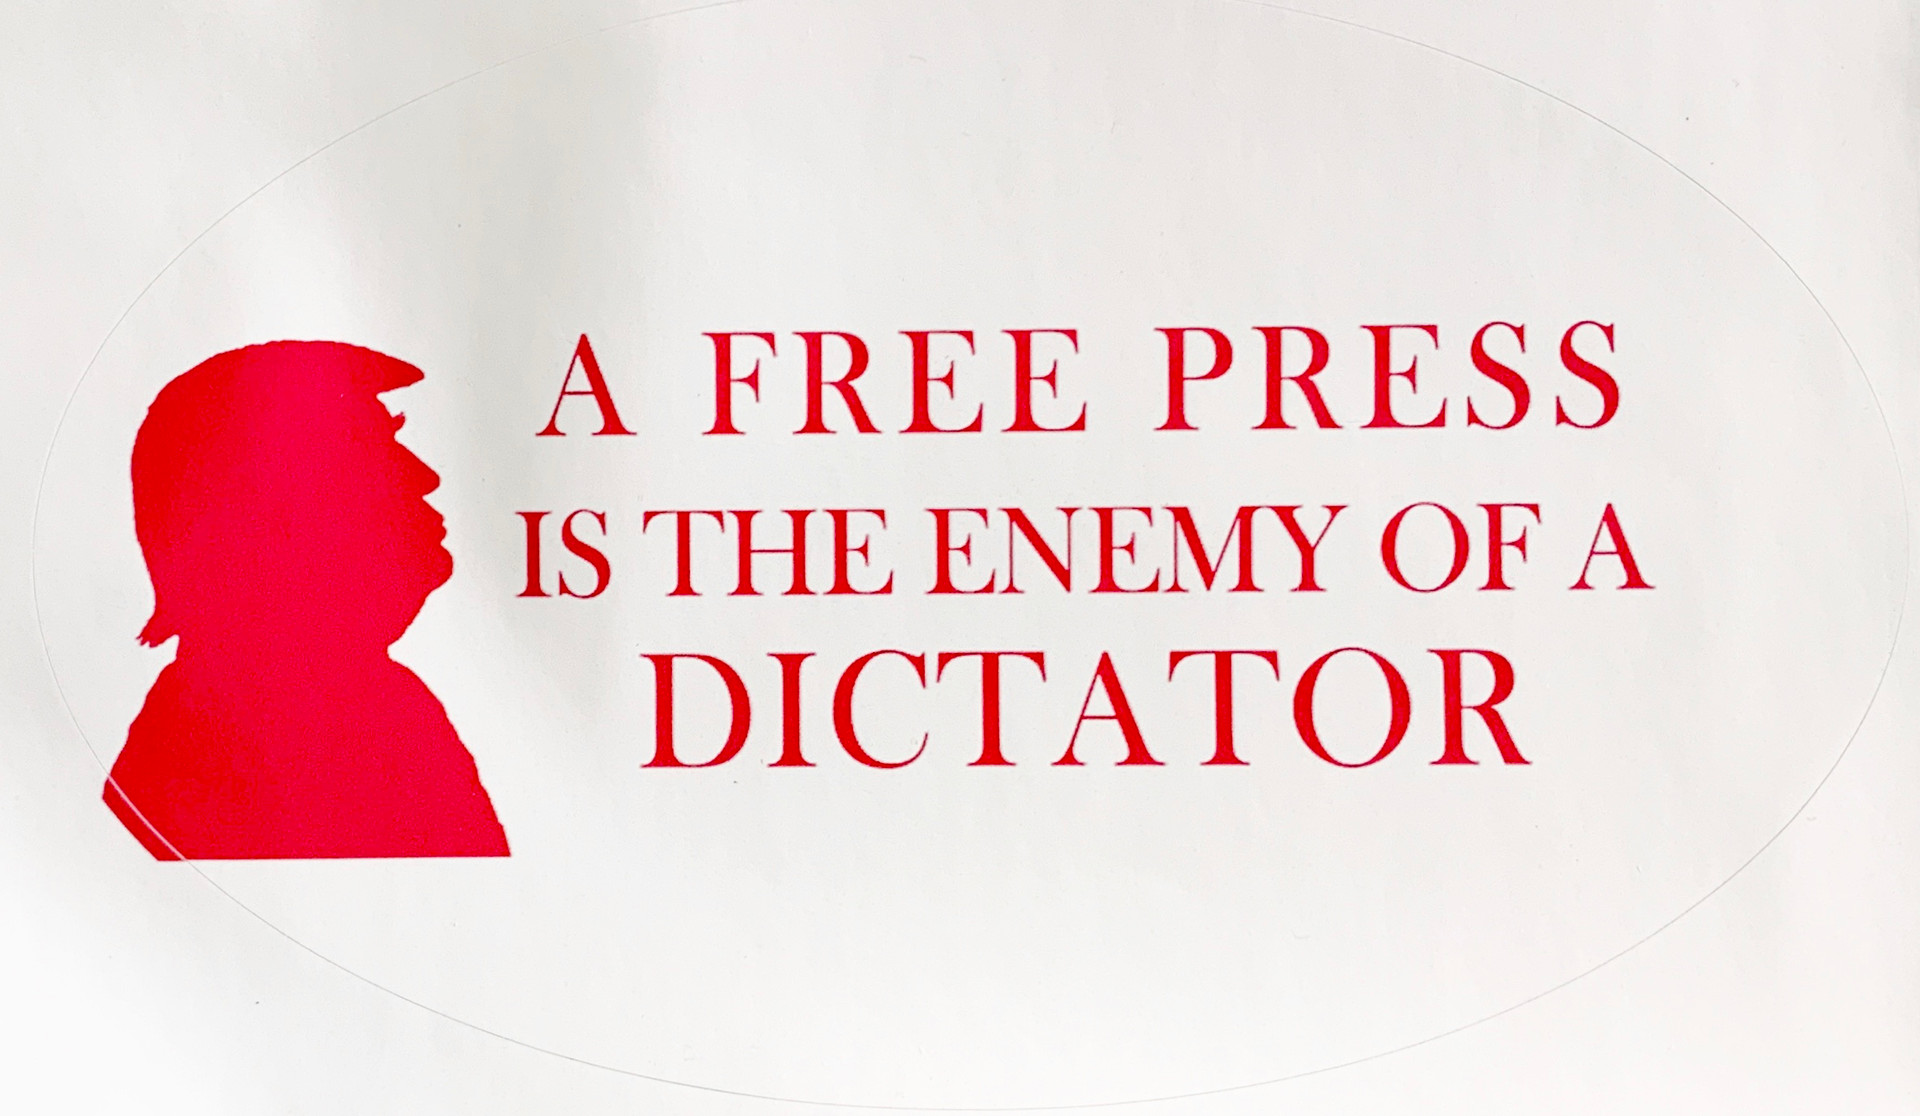 A Free Press Is the Enemy of a Dictator